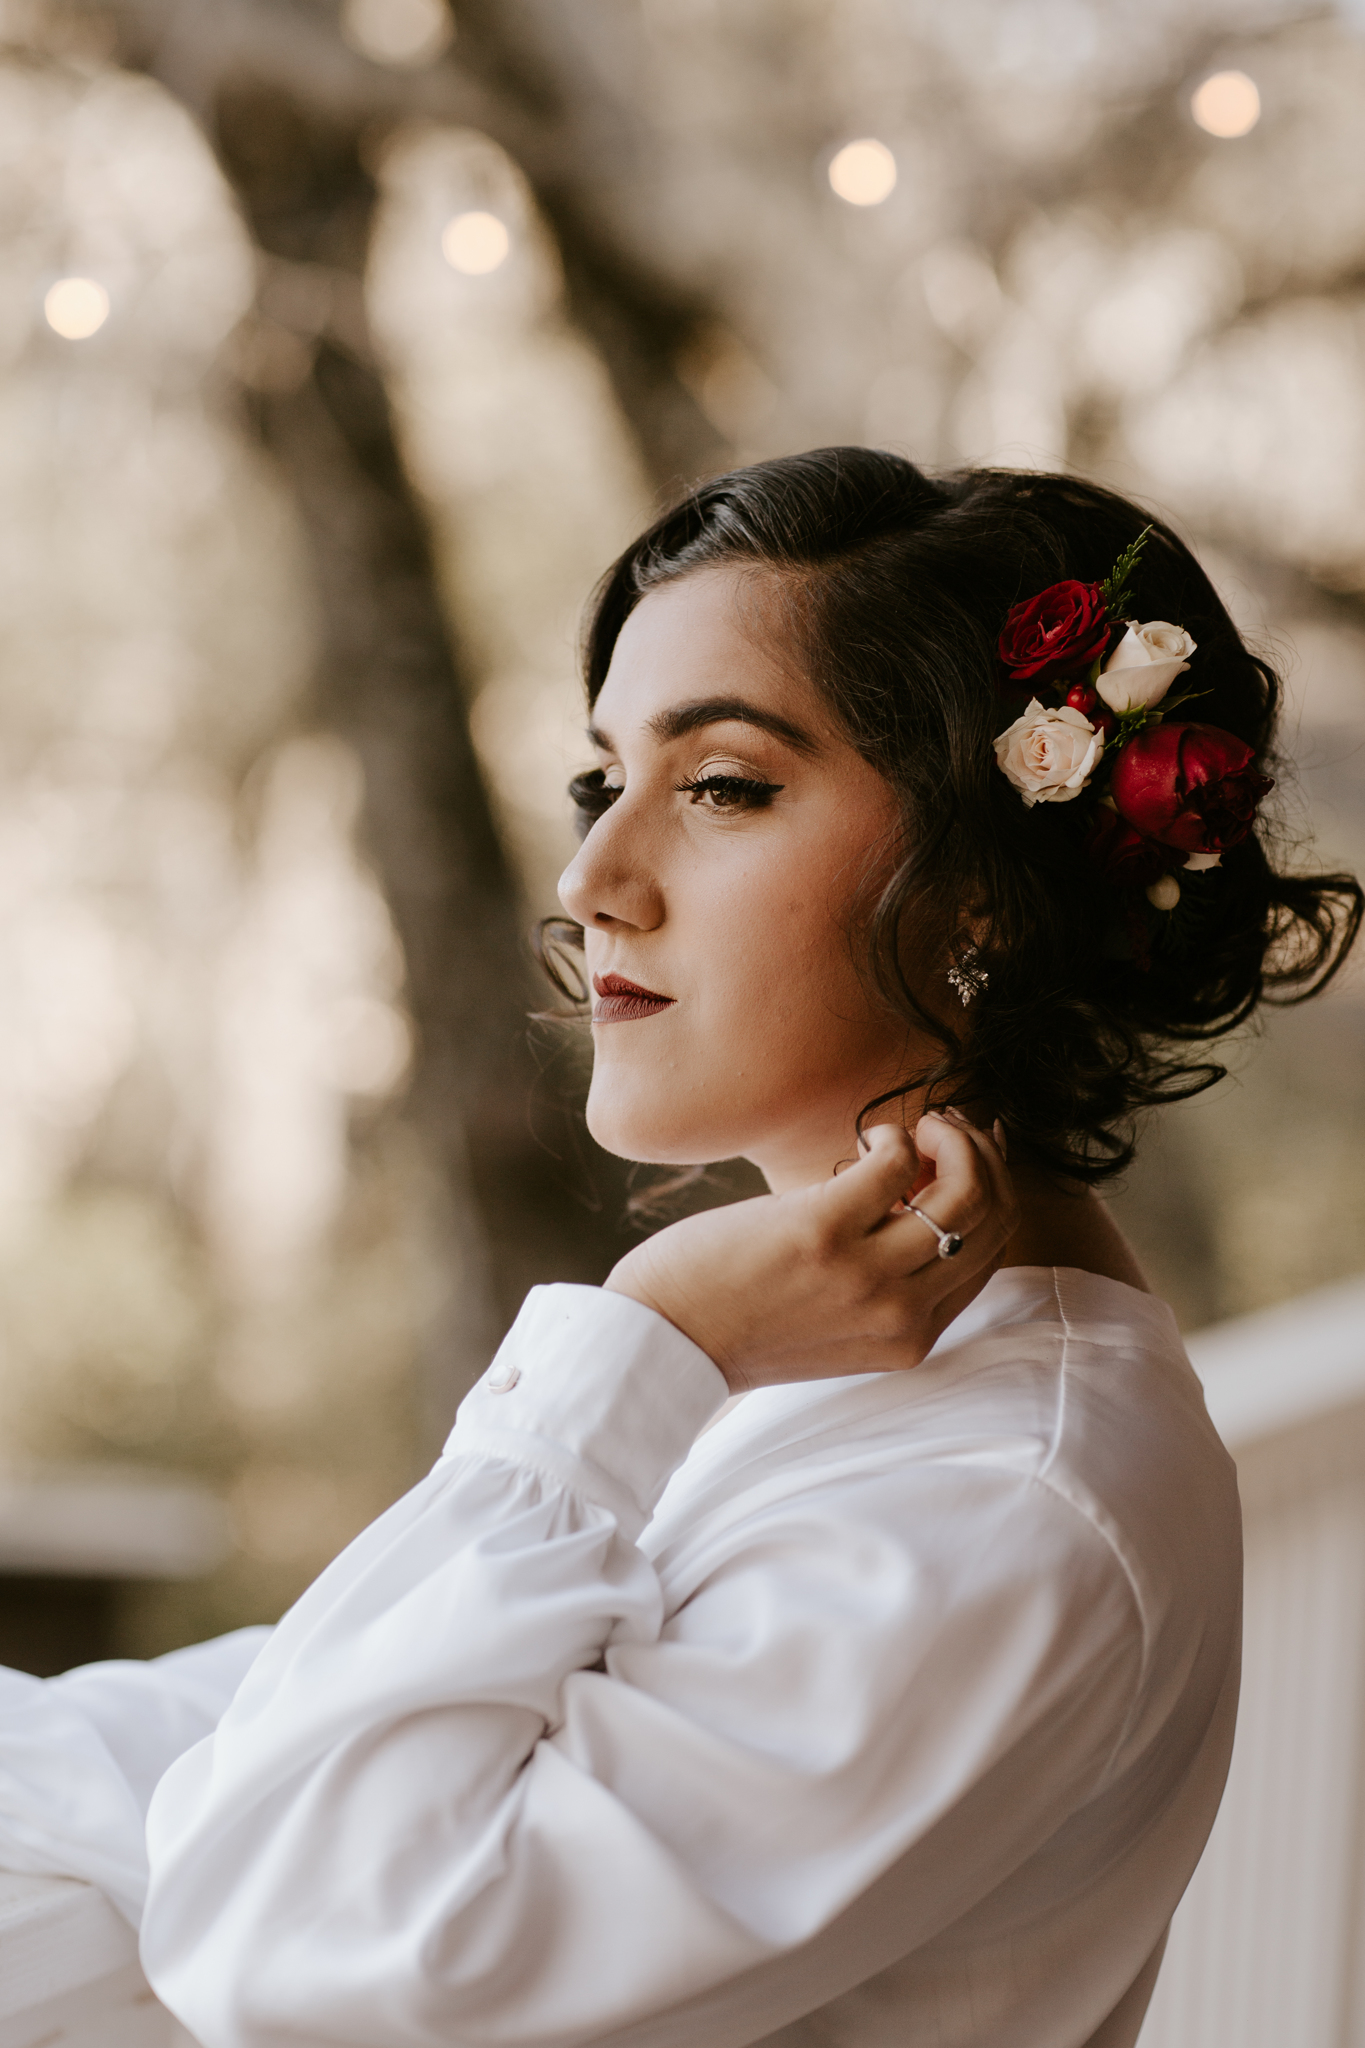 2019-01-09_Zack-Danny_Wedding_Sacred Mountain_Paige Nelson Photography_HR-298.jpg